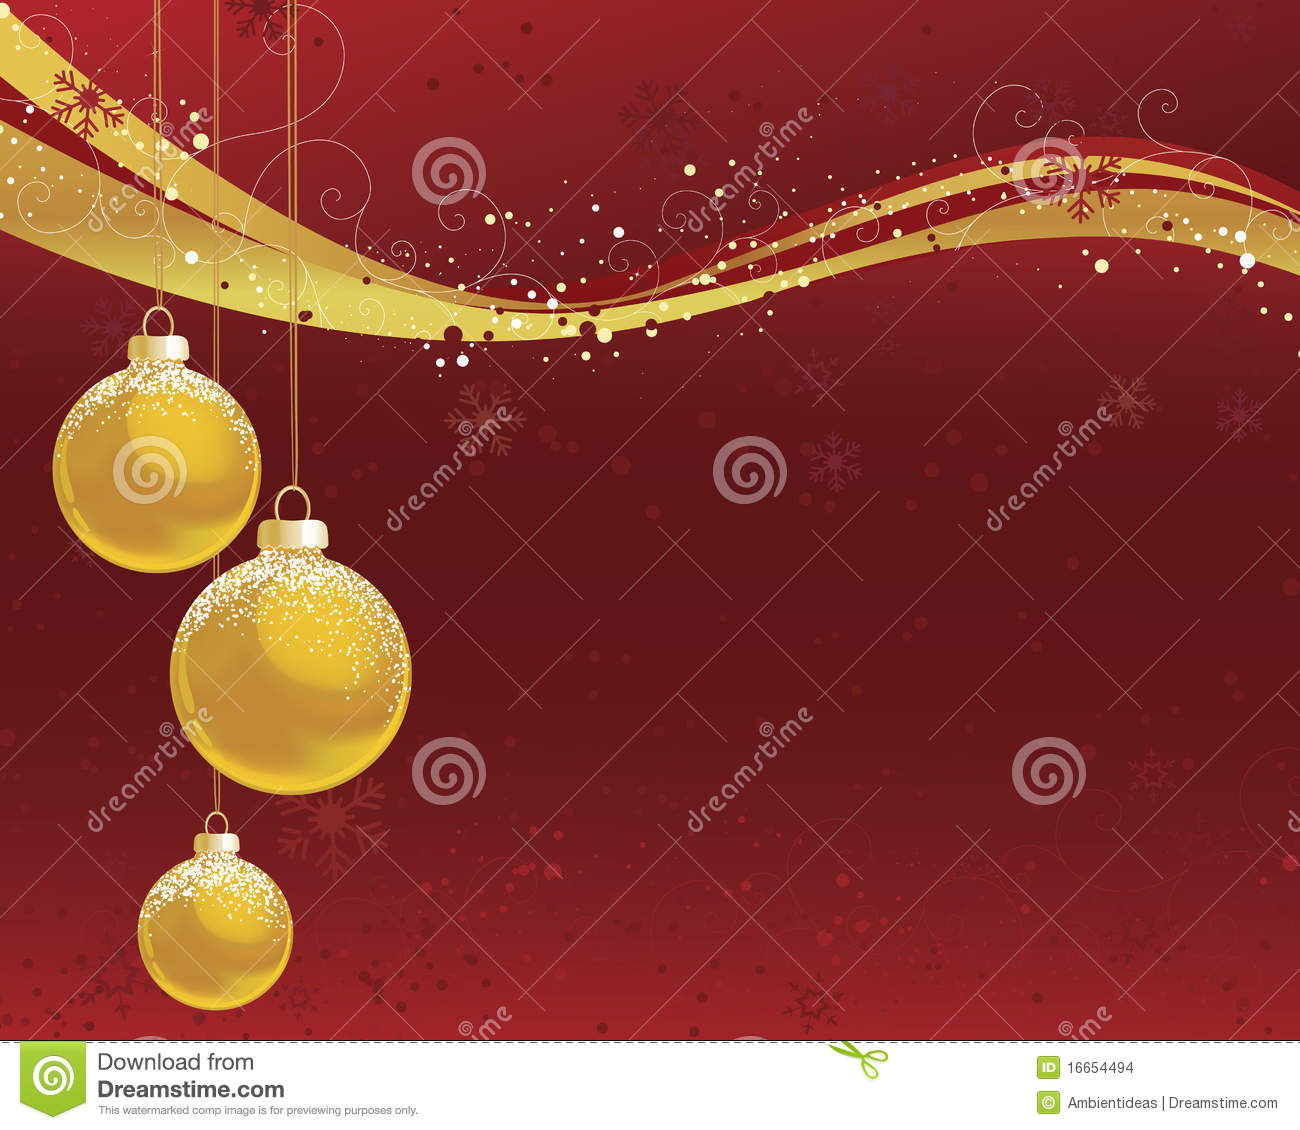 Red and gold christmas ornaments - Gold Christmas Ornaments On Red